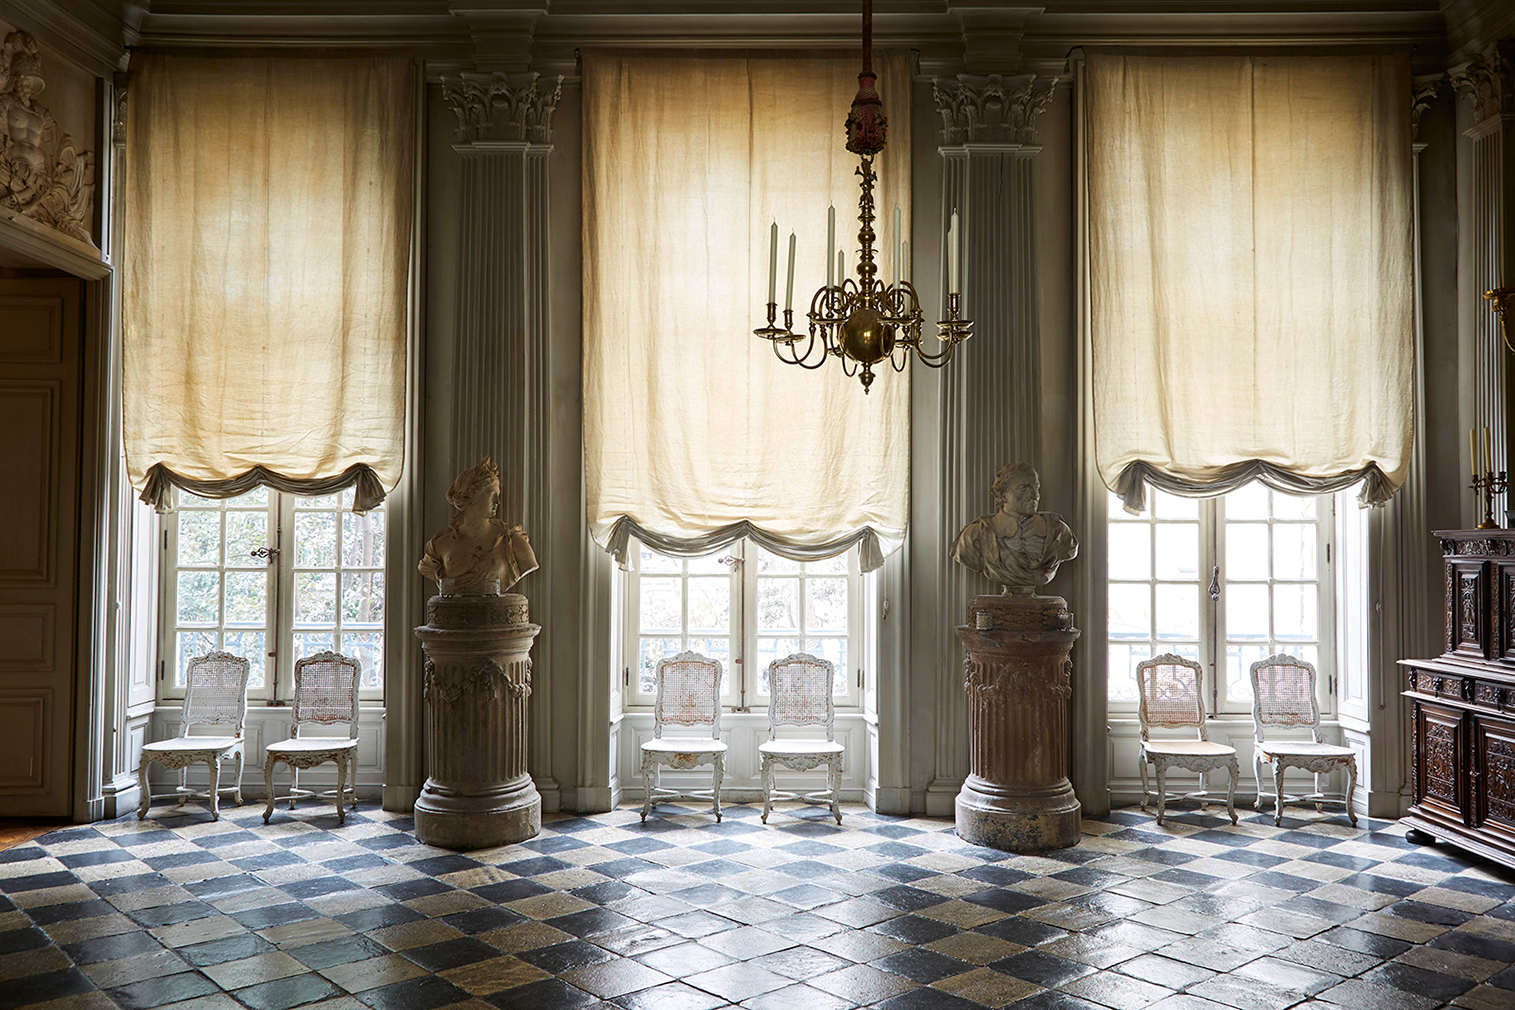 The grand entrance of Joseph Achkar and Michel Charriere's Parisian home. Photography: Miguel Flores-Vianna